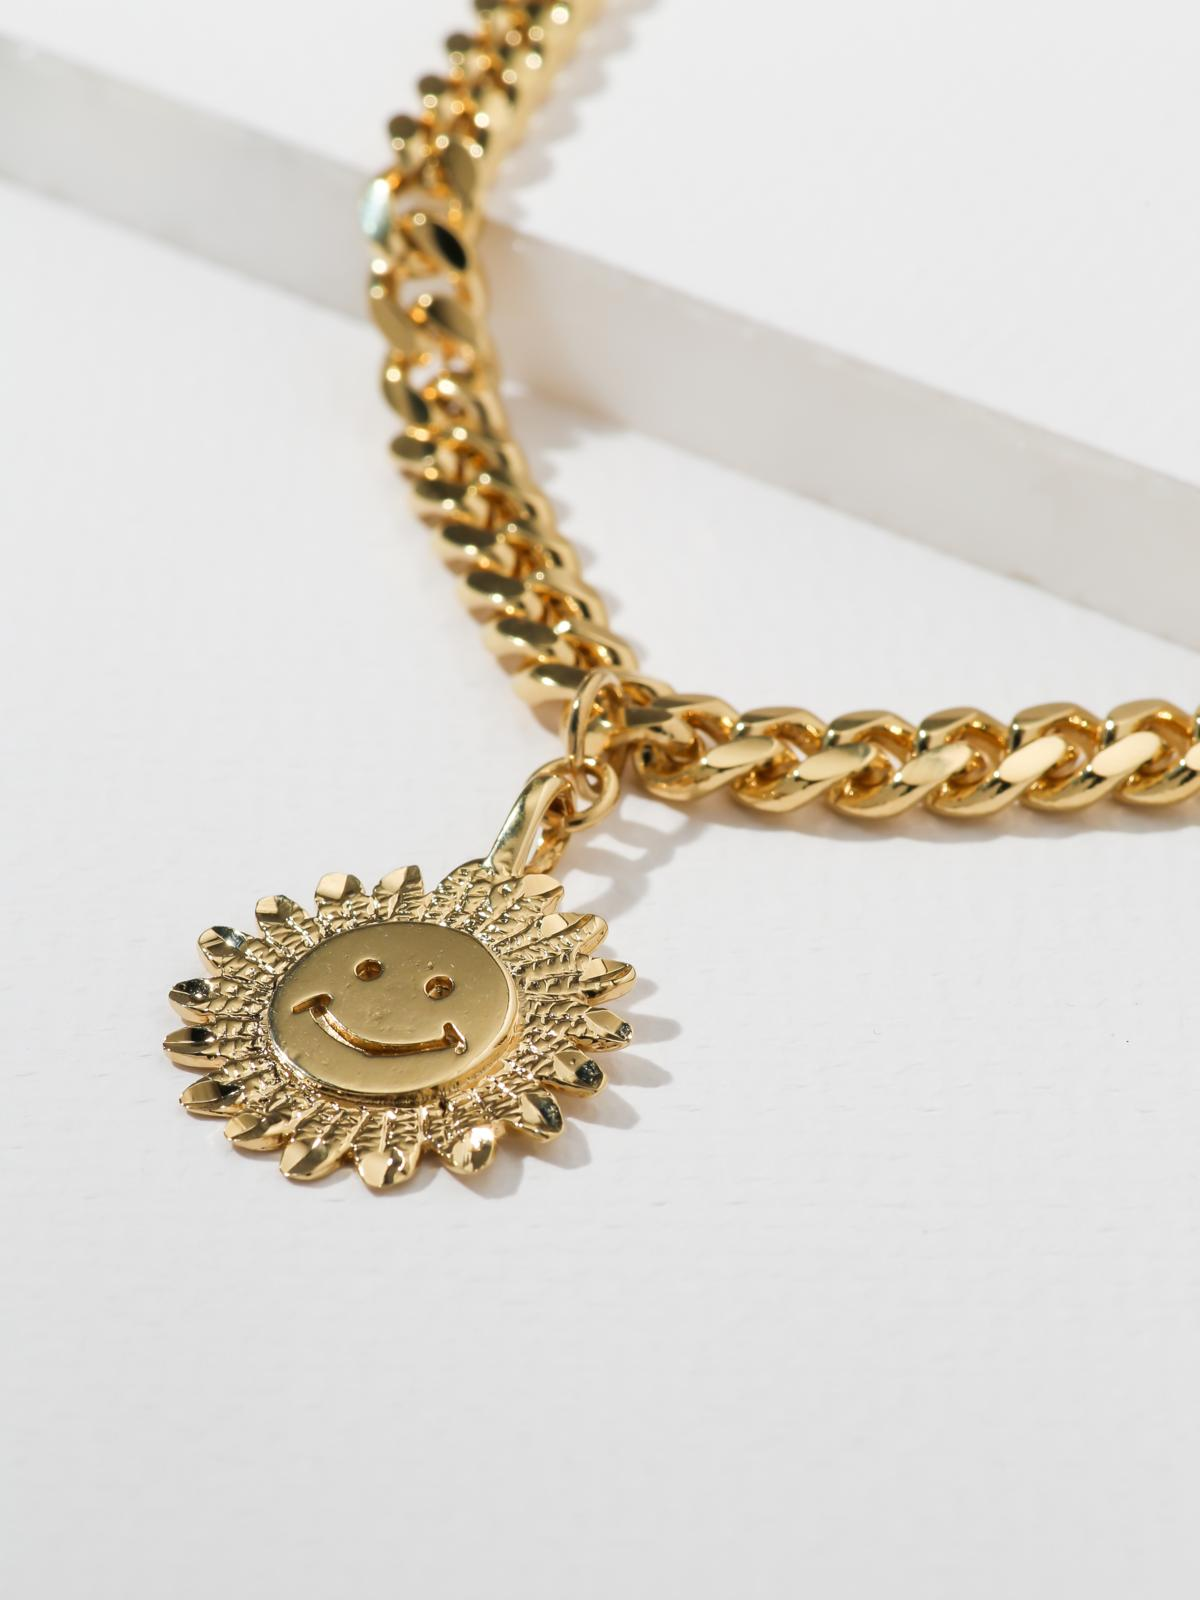 The Happy Flower Necklace